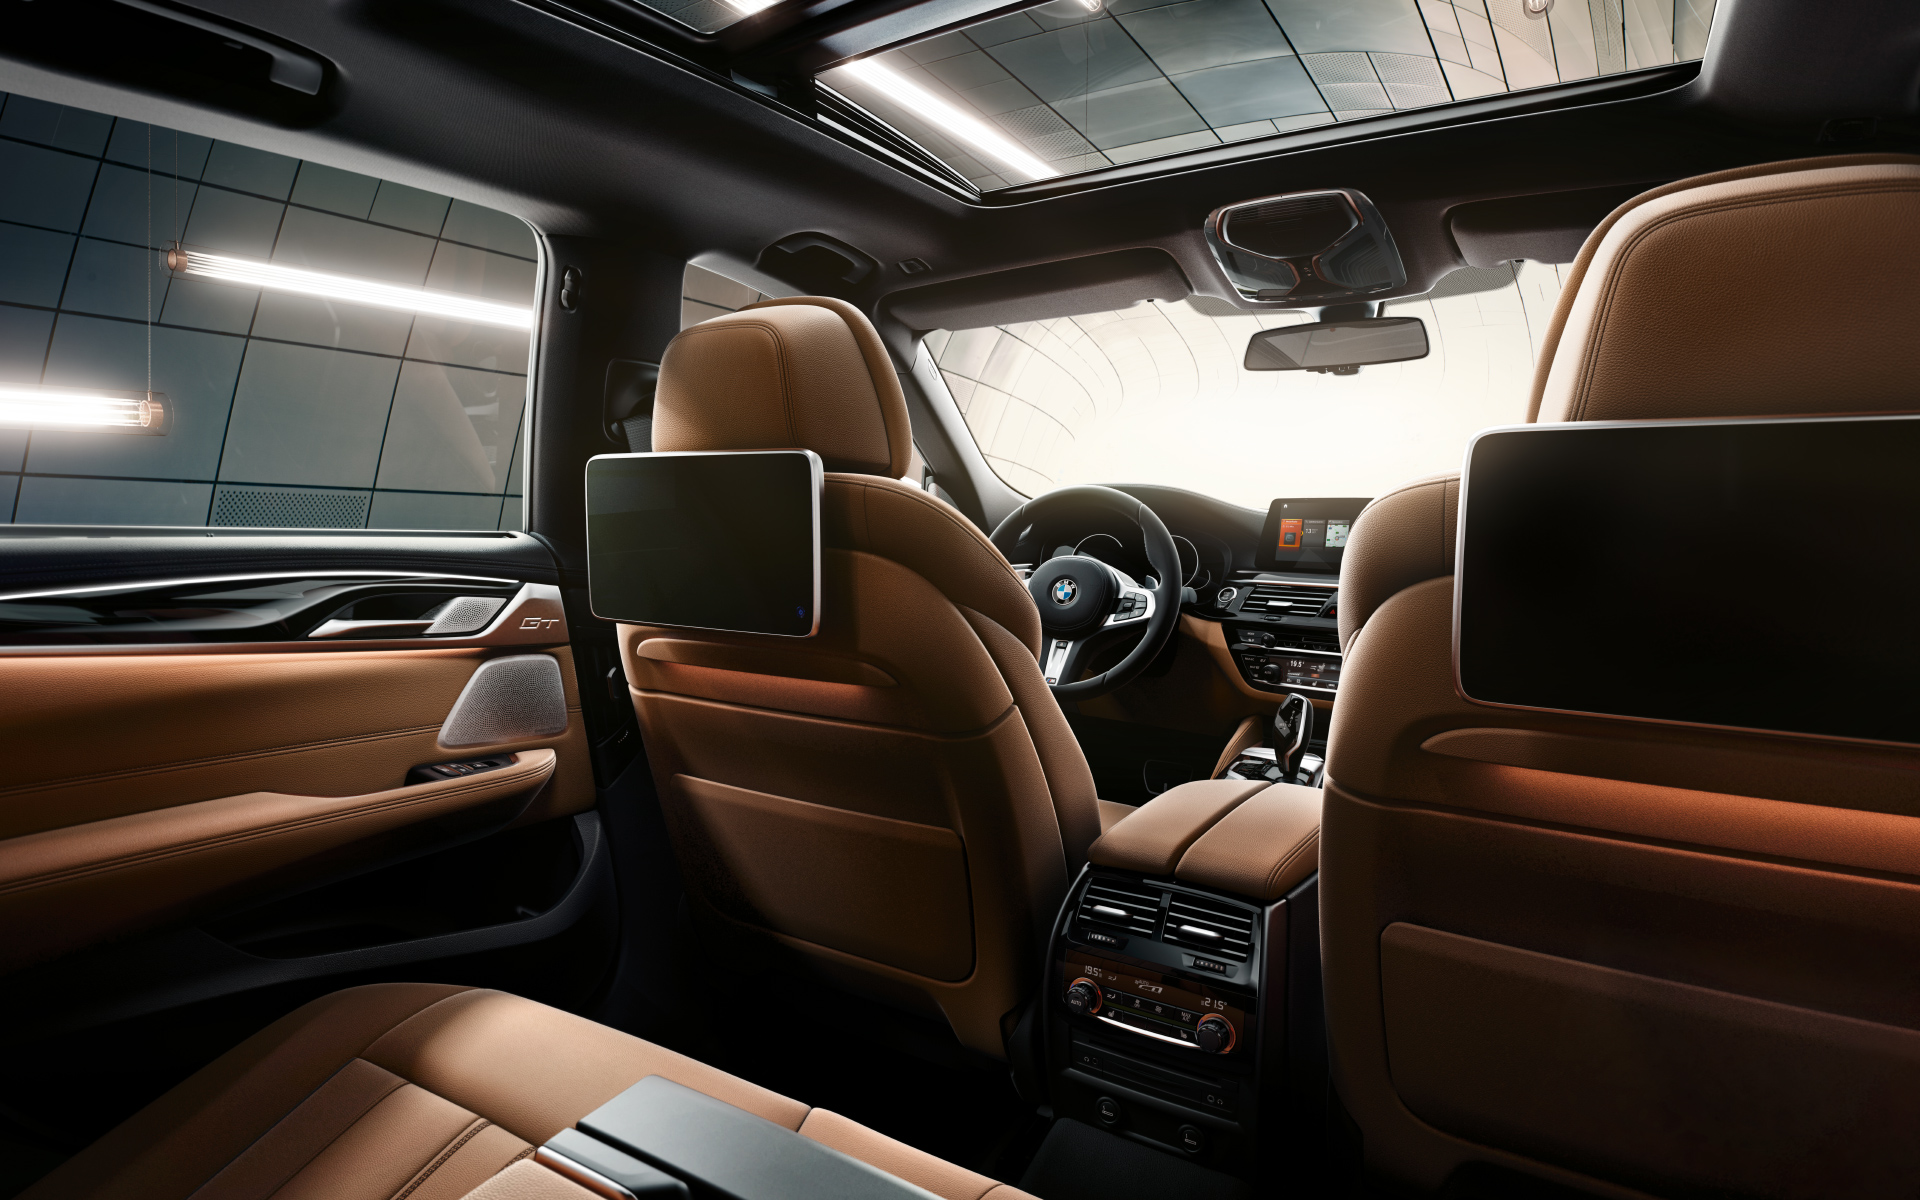 As For Rear Passengers The 6 Series Gran Turismo Is Said To Have Three Full Sized Seats With Ample Headroom And Legroom Multi Contour Active Seat